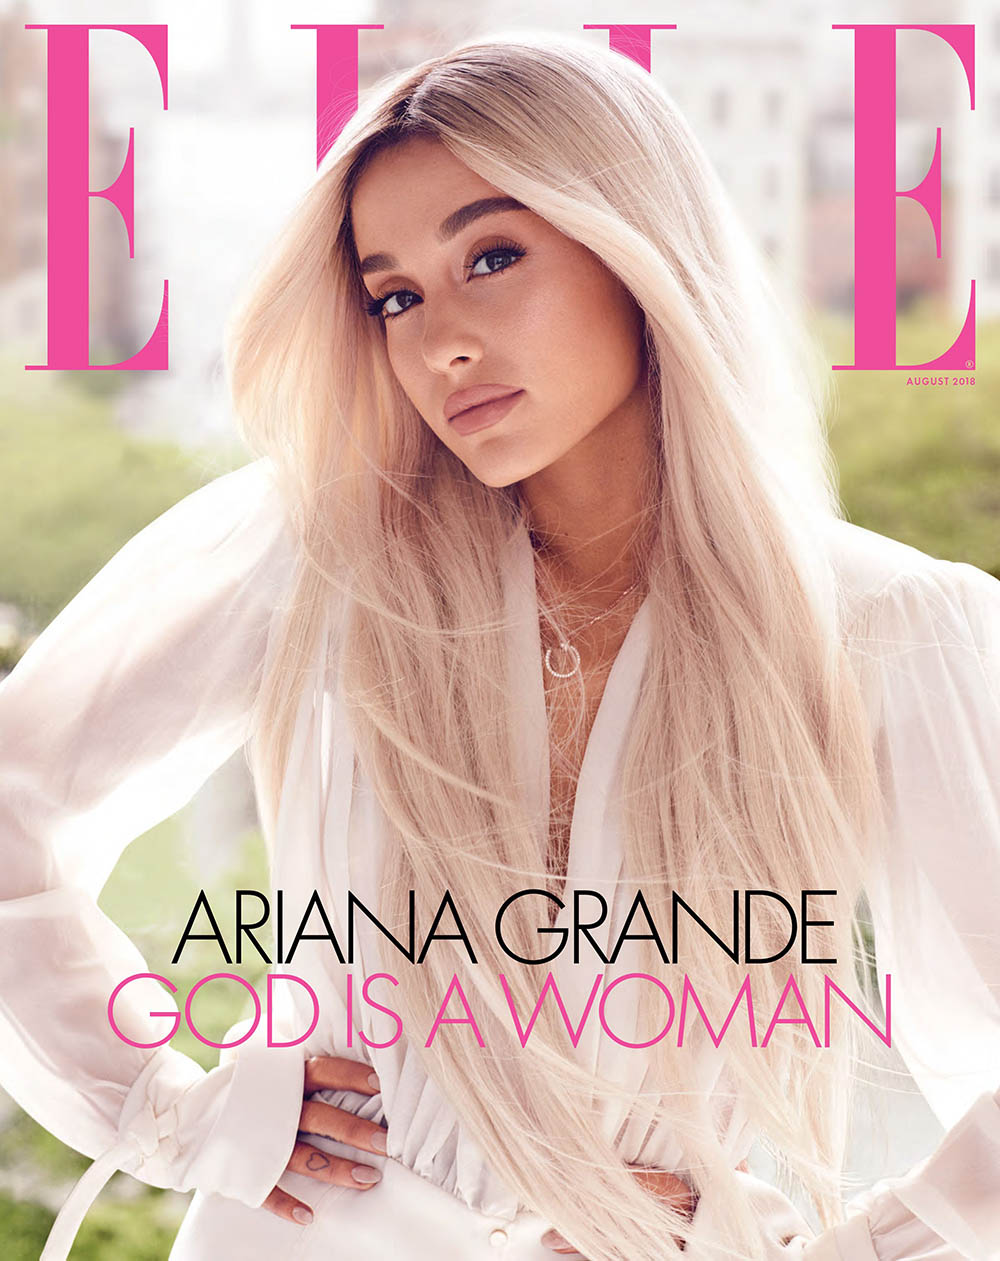 Ariana Grande covers Elle US August 2018 by Alexi Lubomirski